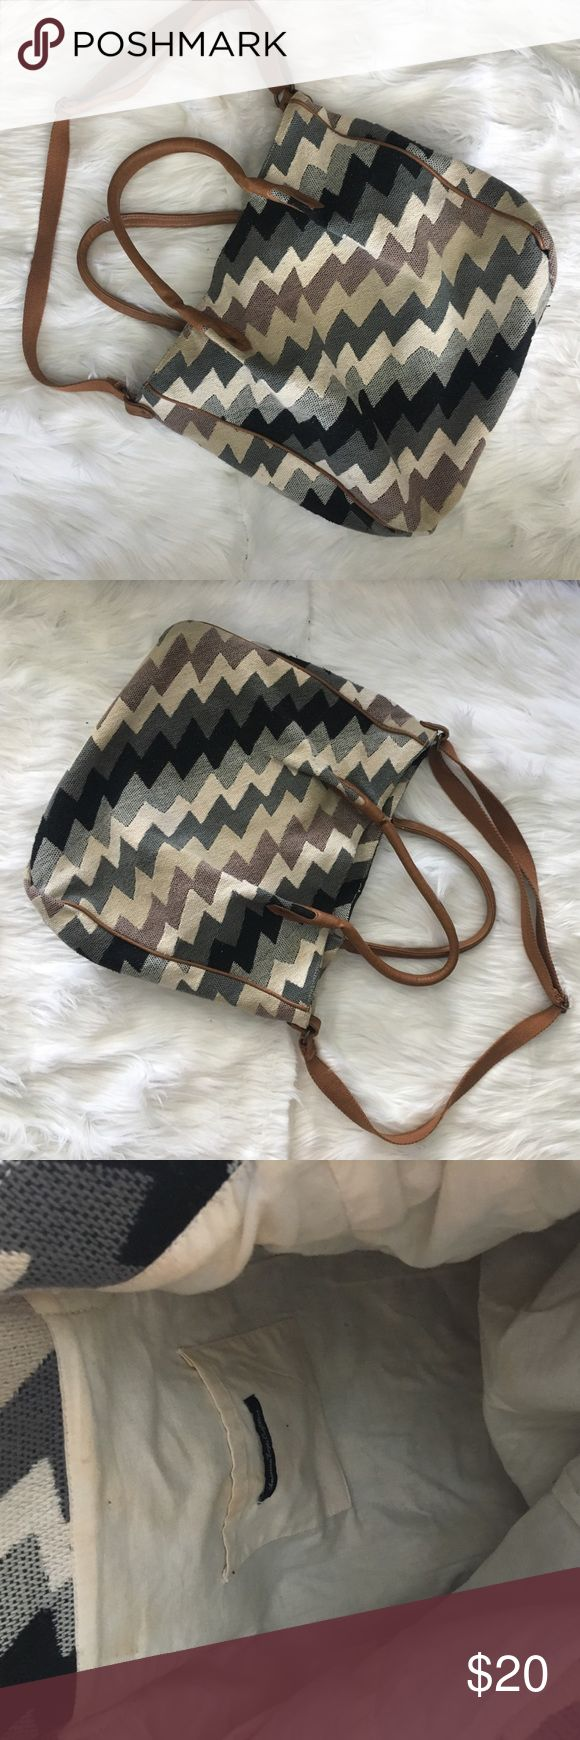 American Eagle Canvas Tote Bag Zigzag woven shoulder bag. Used a handful of times as beach bag/book bag. Slight wear on inside of bag (see third and fourth picture). Handles in great condition. American Eagle Outfitters Bags Totes